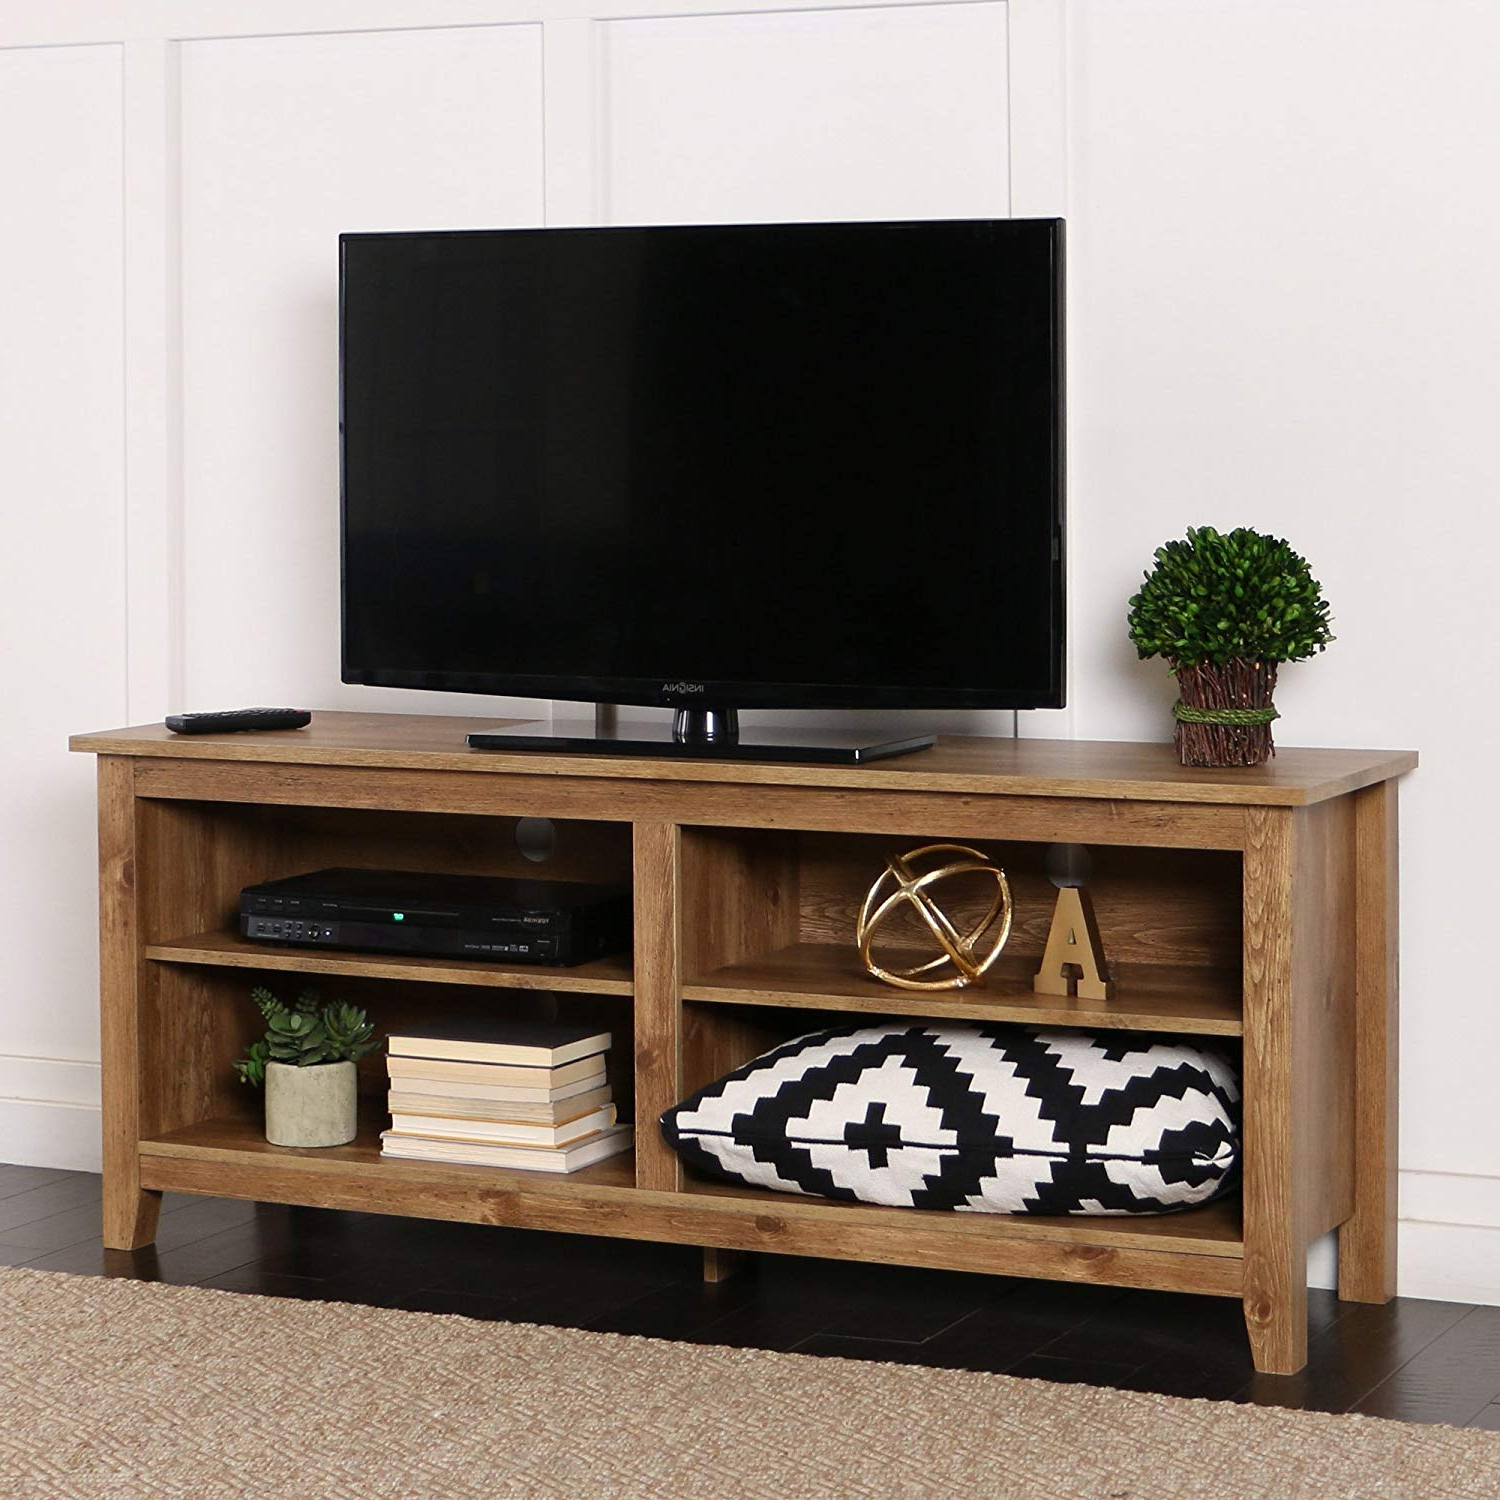 Preferred 42 Inch Wide Tv Stand 40 With Mount Target Room Essentials Assembly For Tv Stands 40 Inches Wide (Gallery 1 of 20)